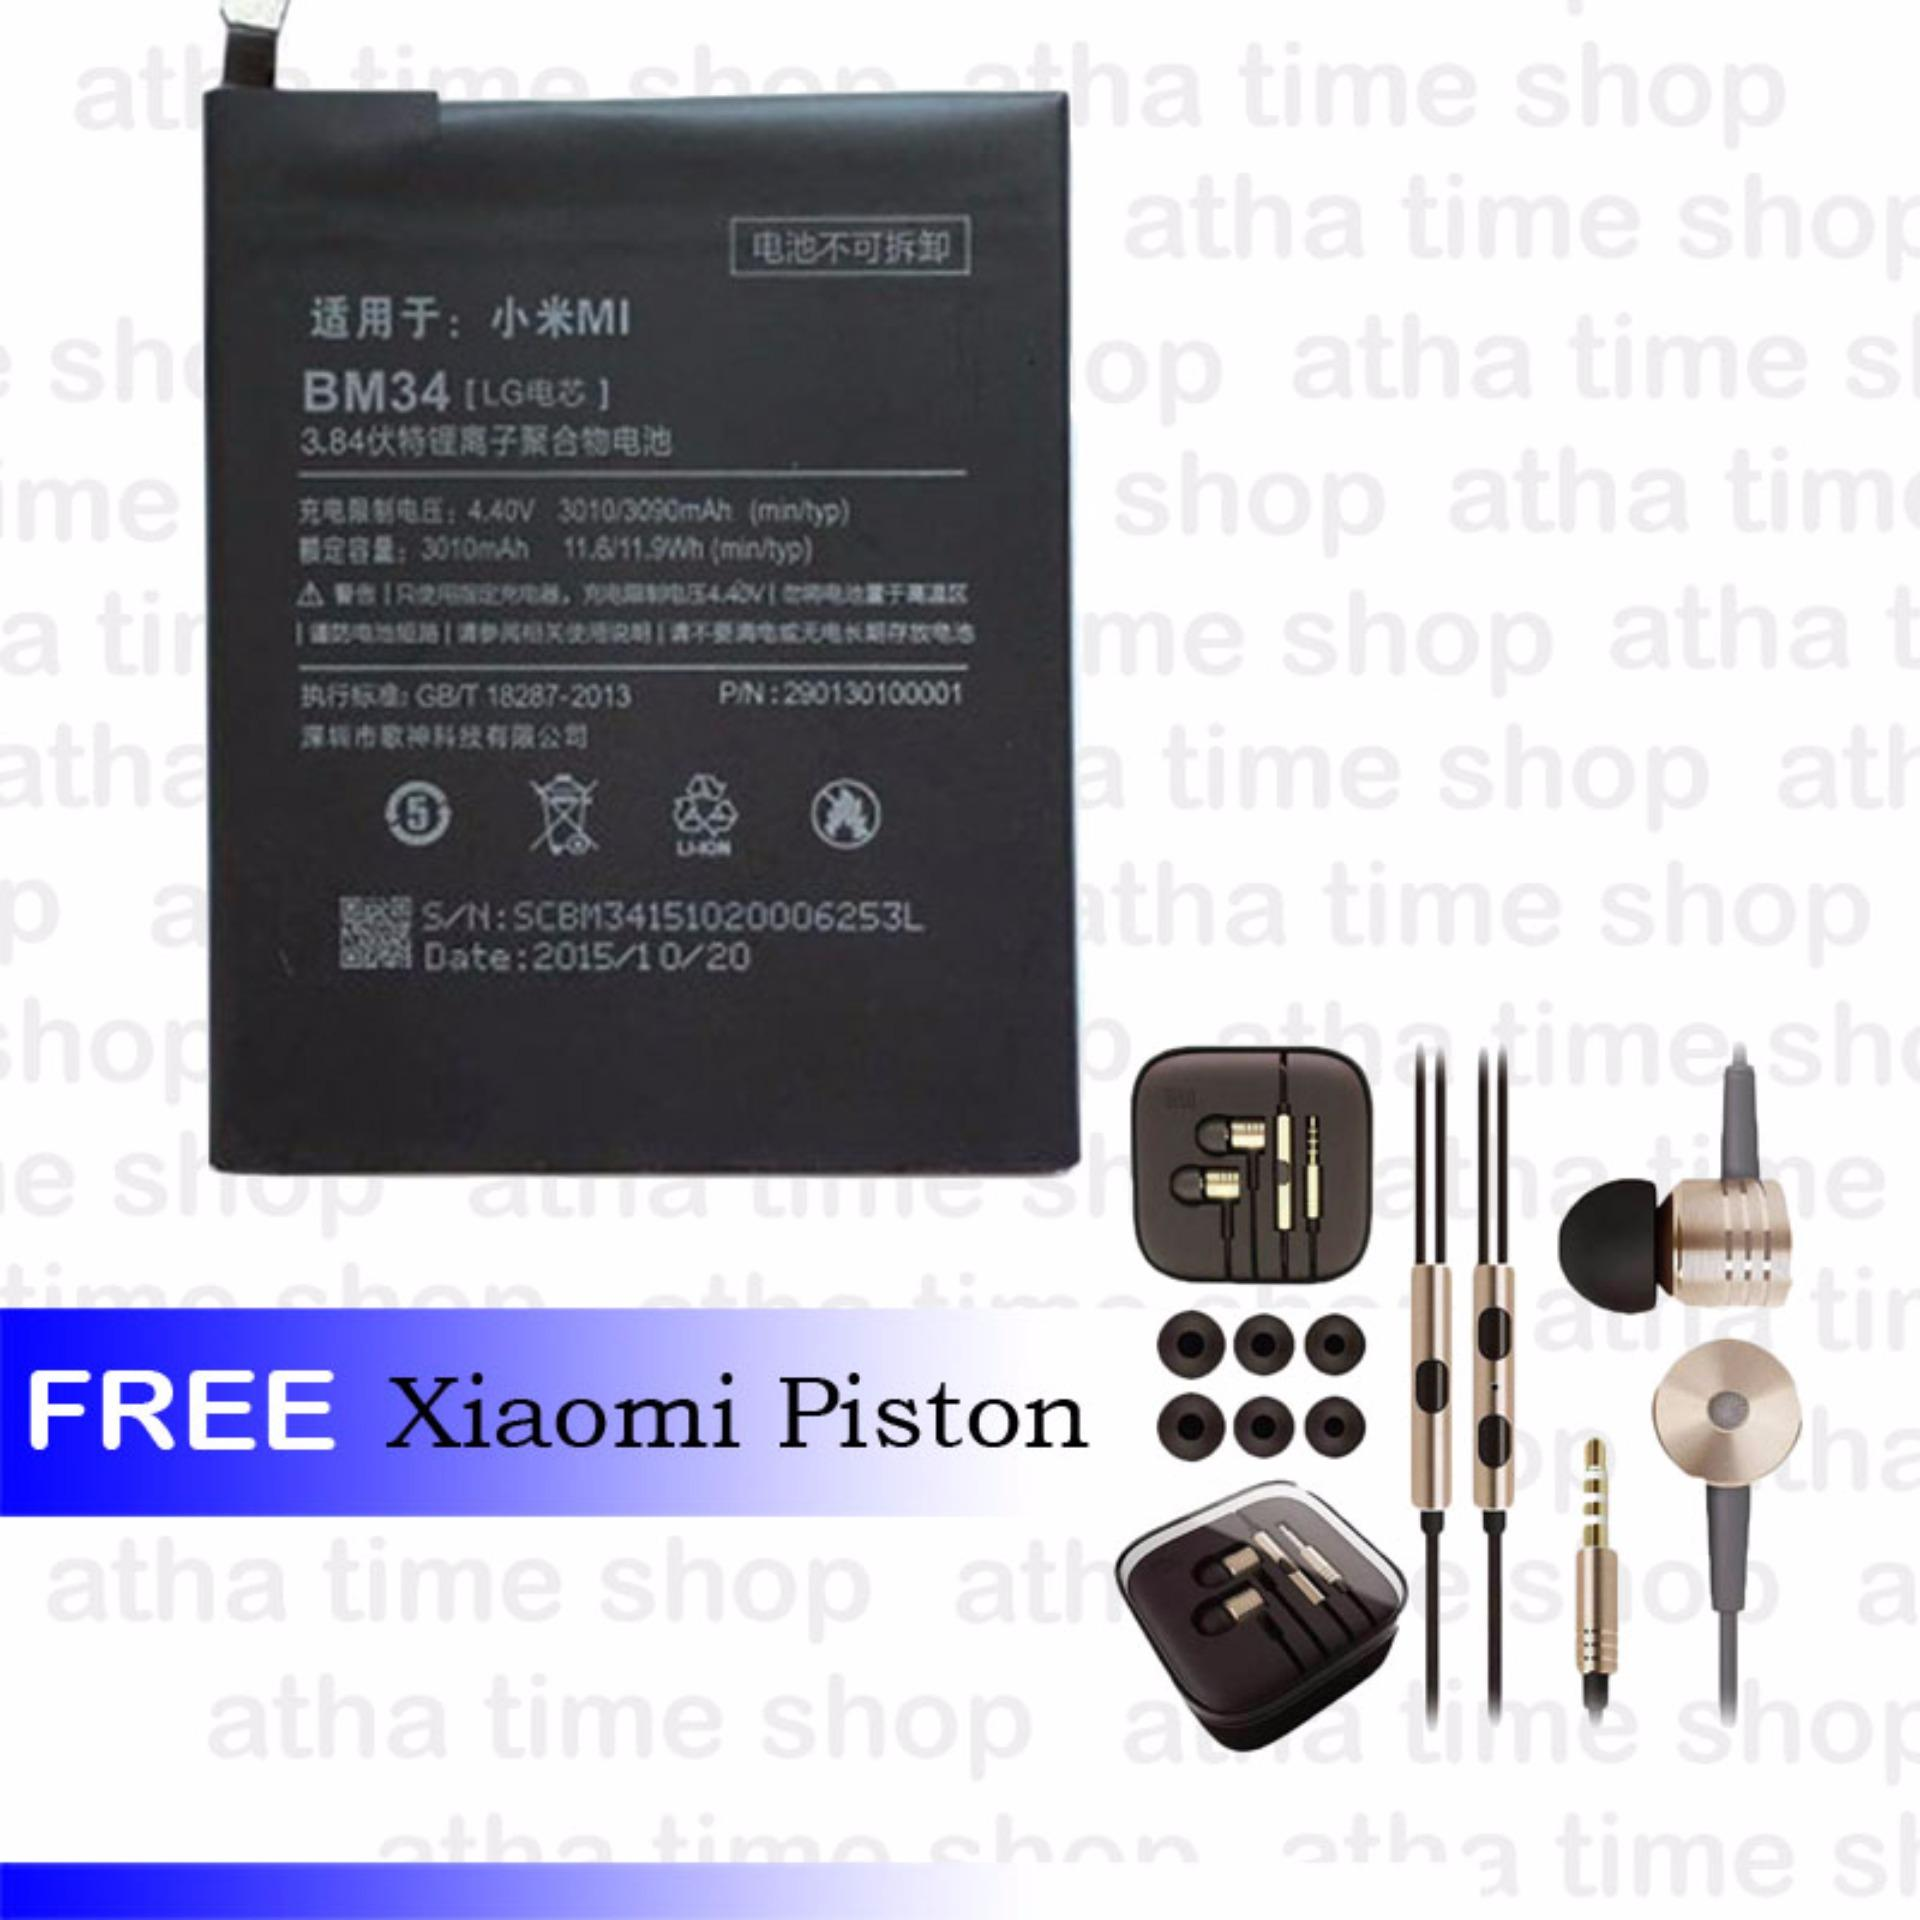 Harga Termurah Xiaomi Battery For Xiaomi Mi Note Bm34 3010 Mah Free Xiaomi Piston